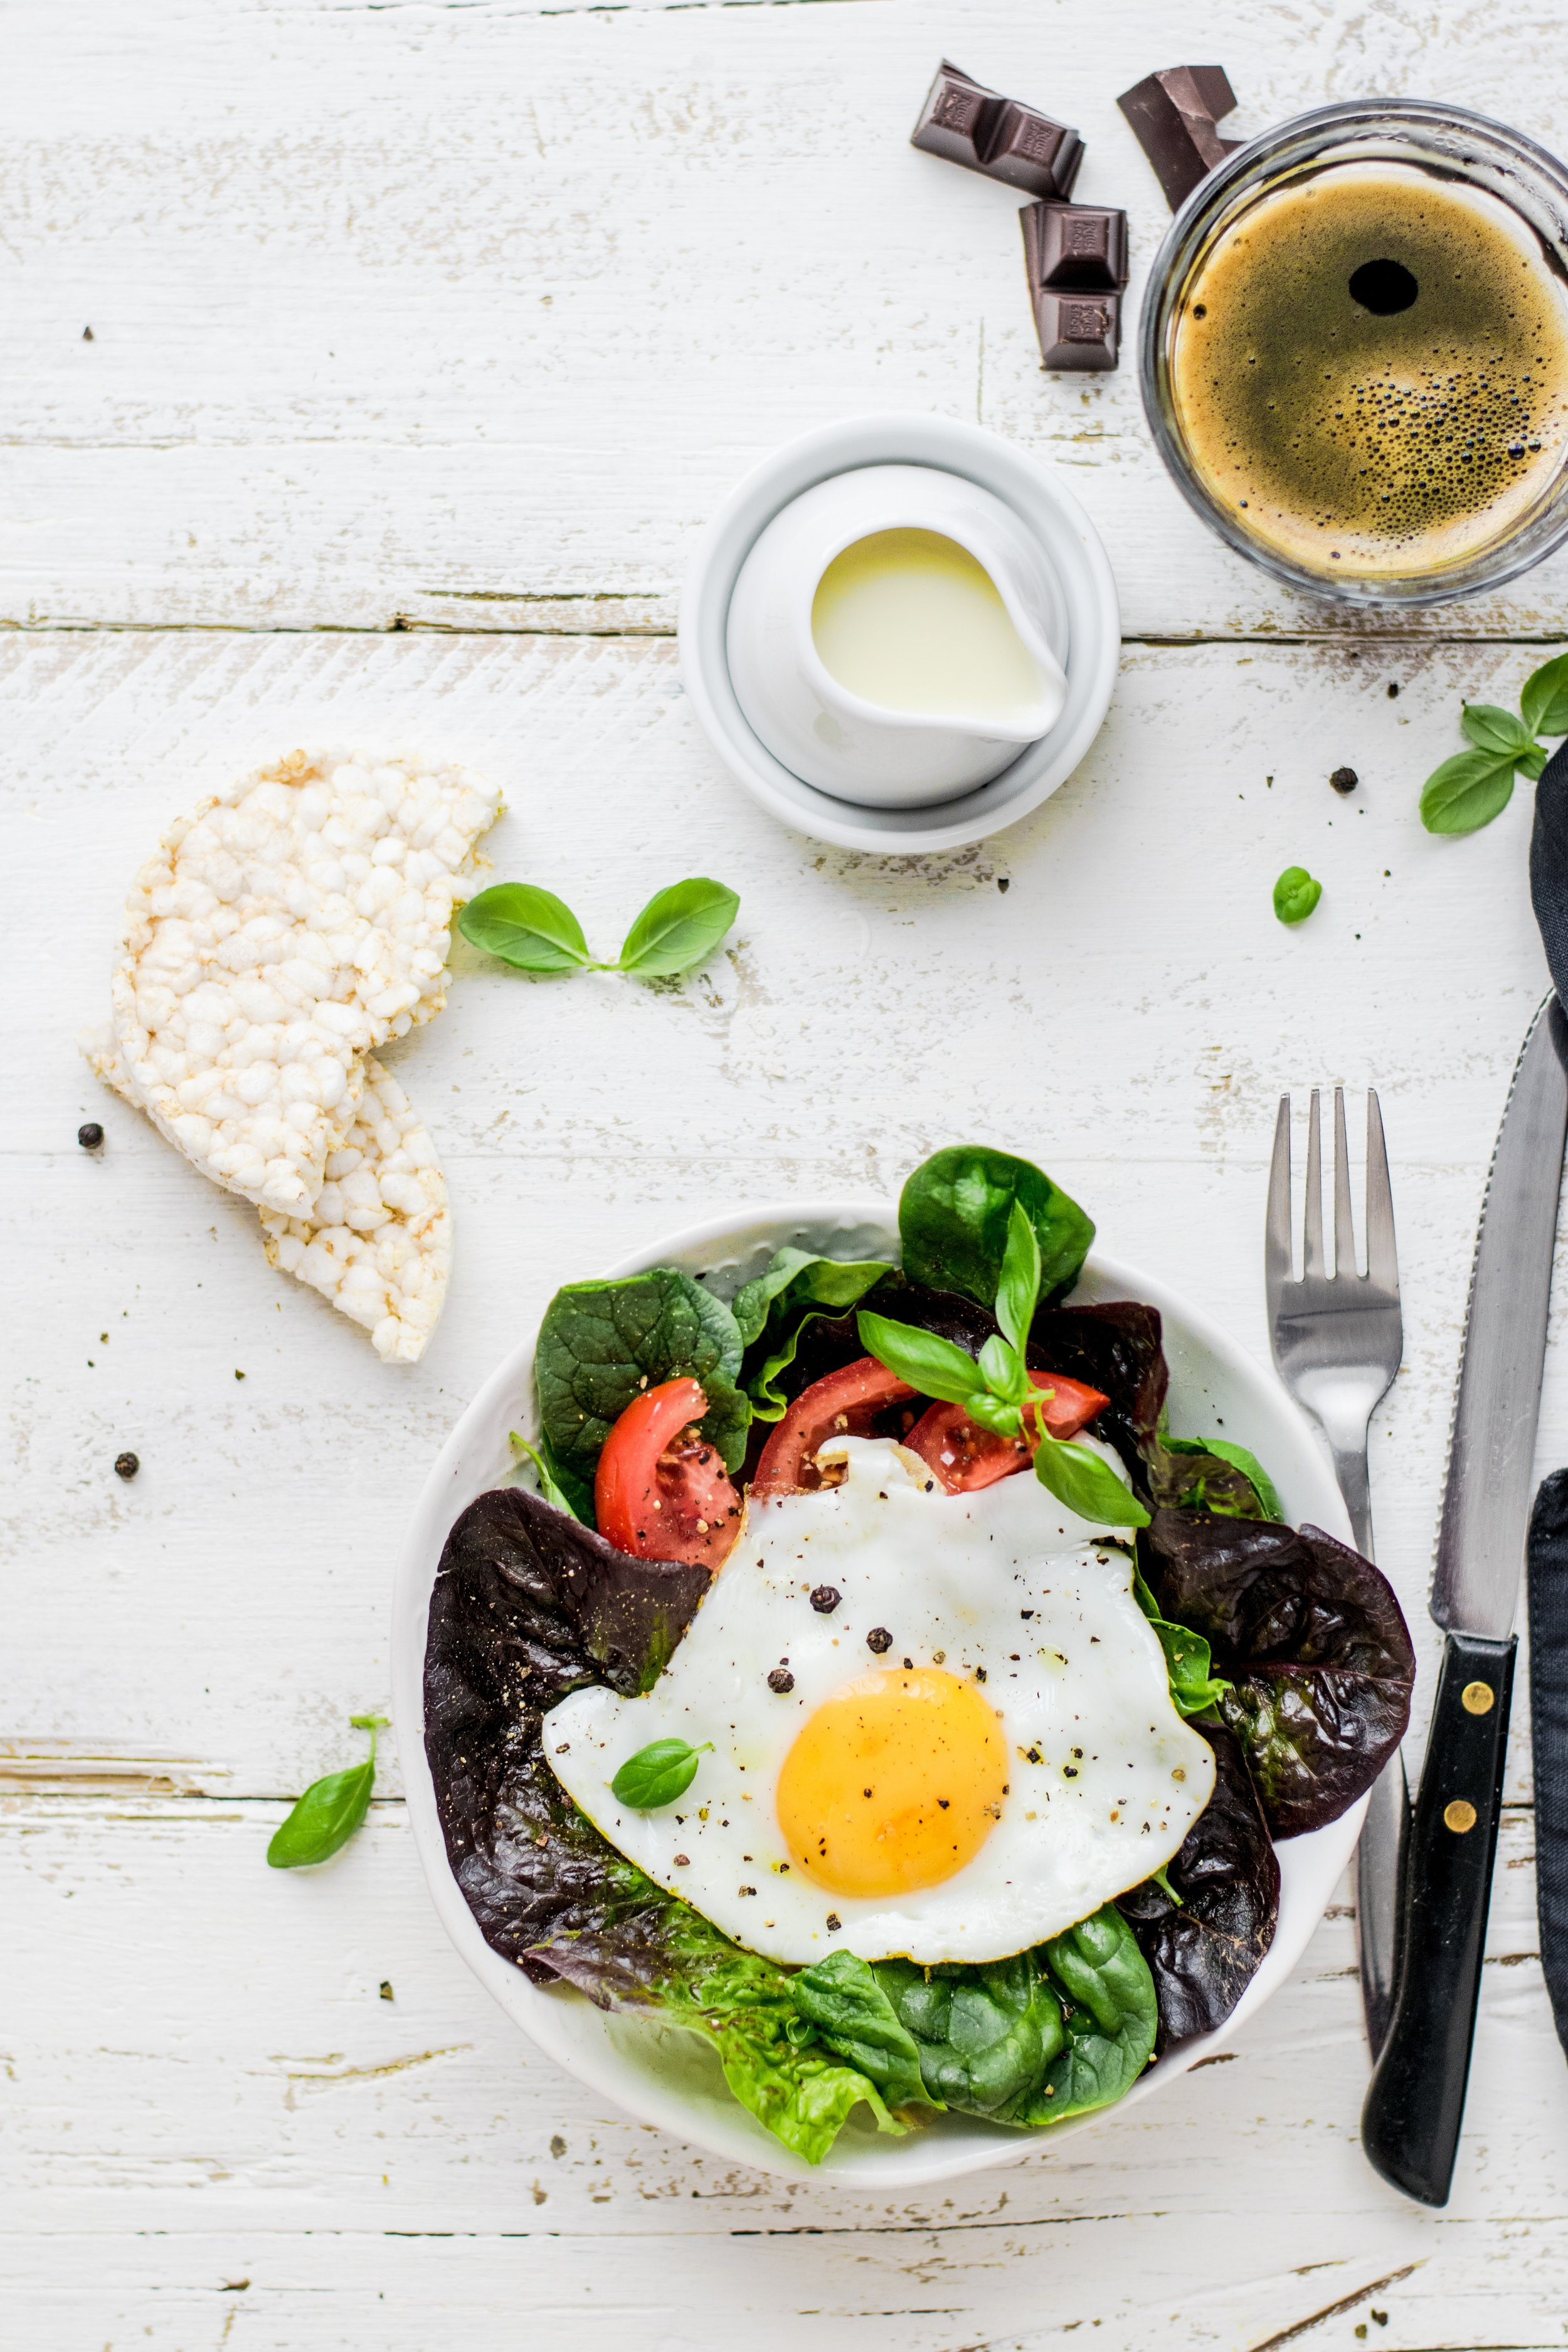 Eggs, Cancer Causing Foods | Wholesome LLC